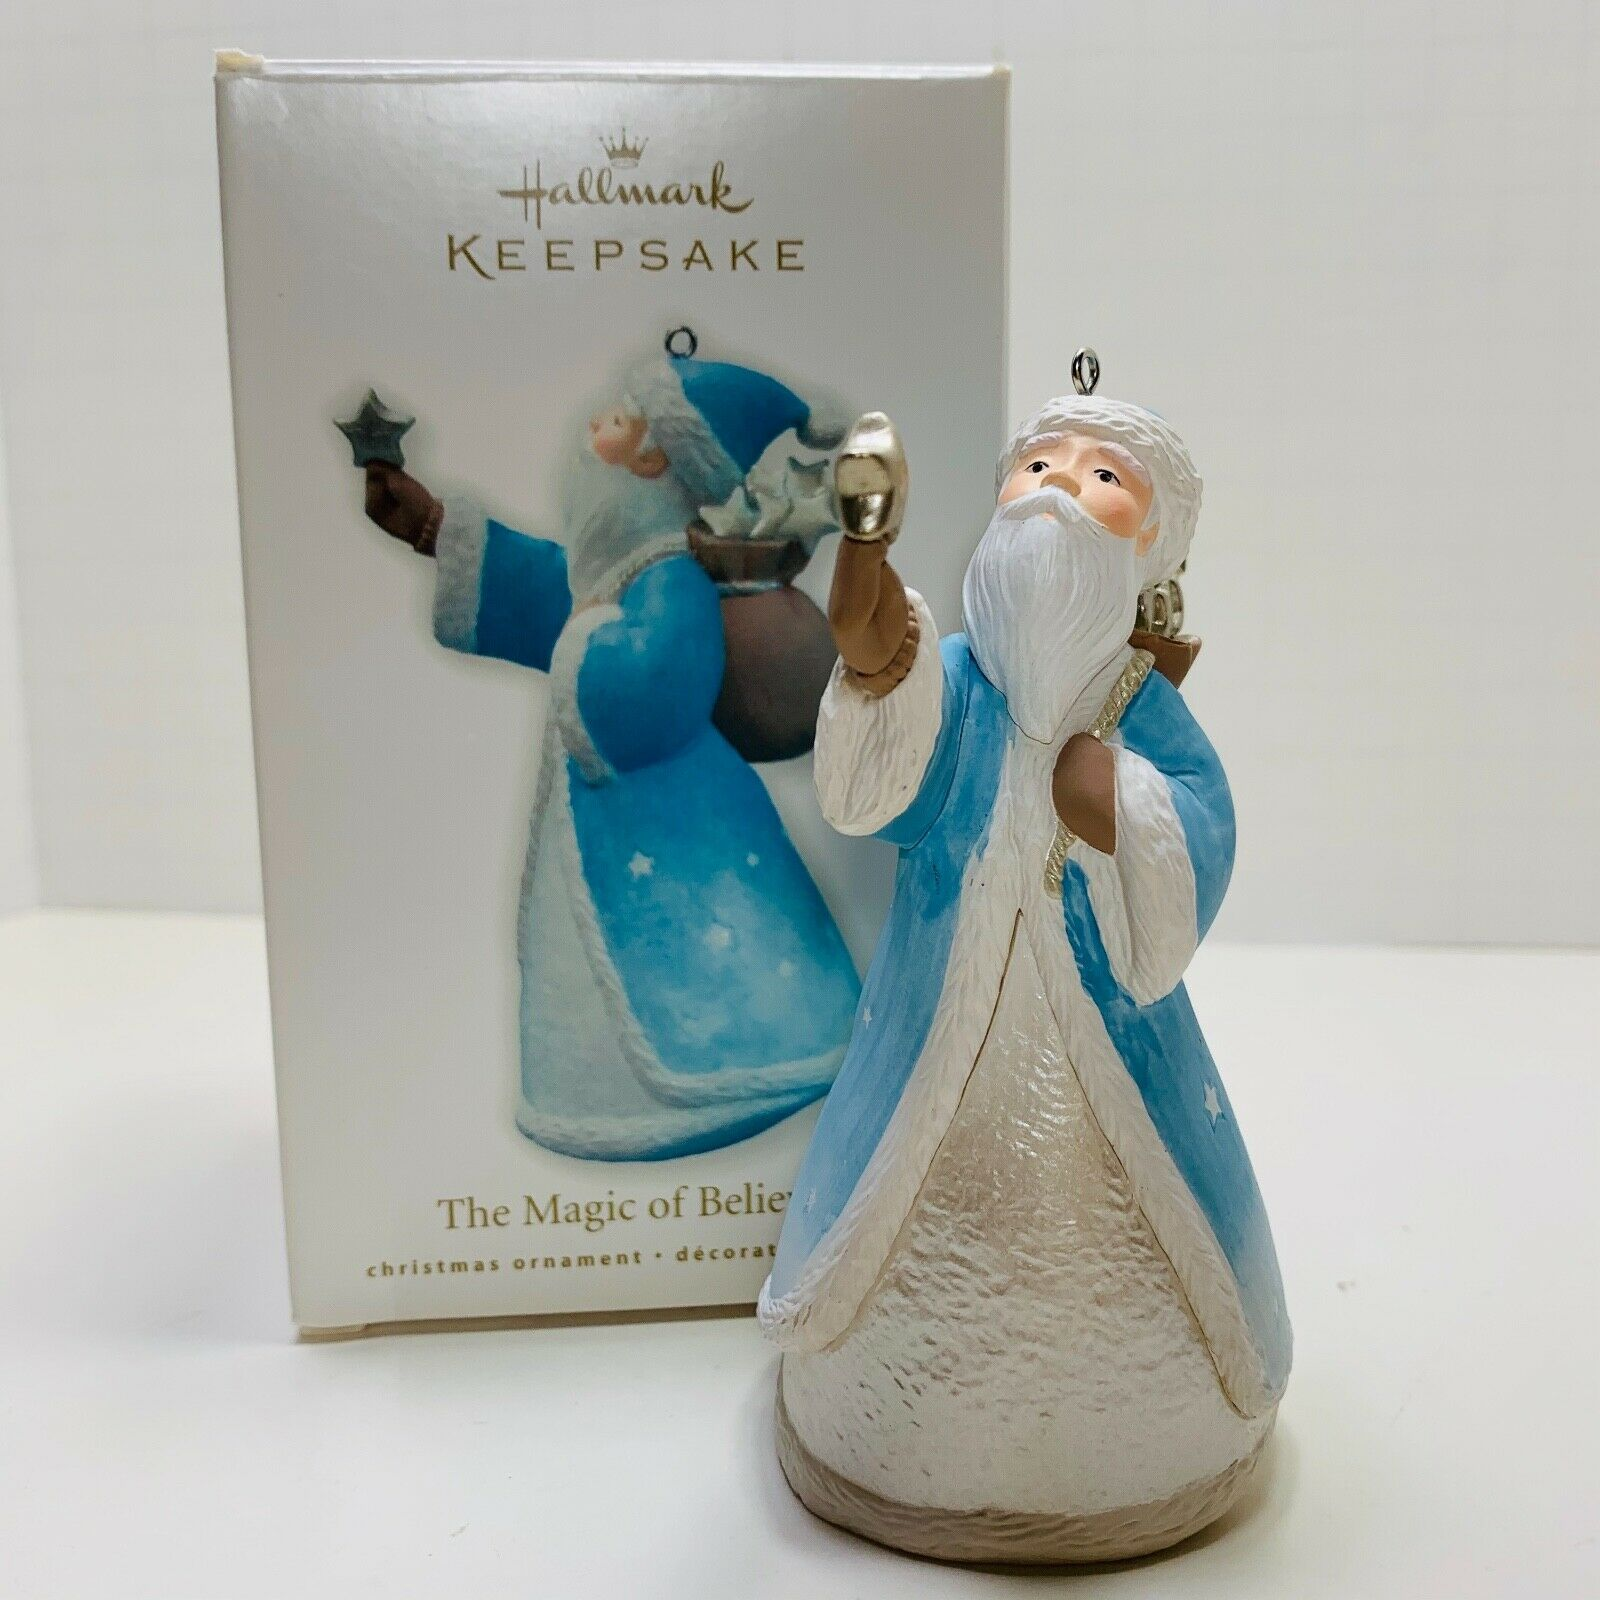 Primary image for Hallmark Keepsake Ornament The Magic of Believing 2010